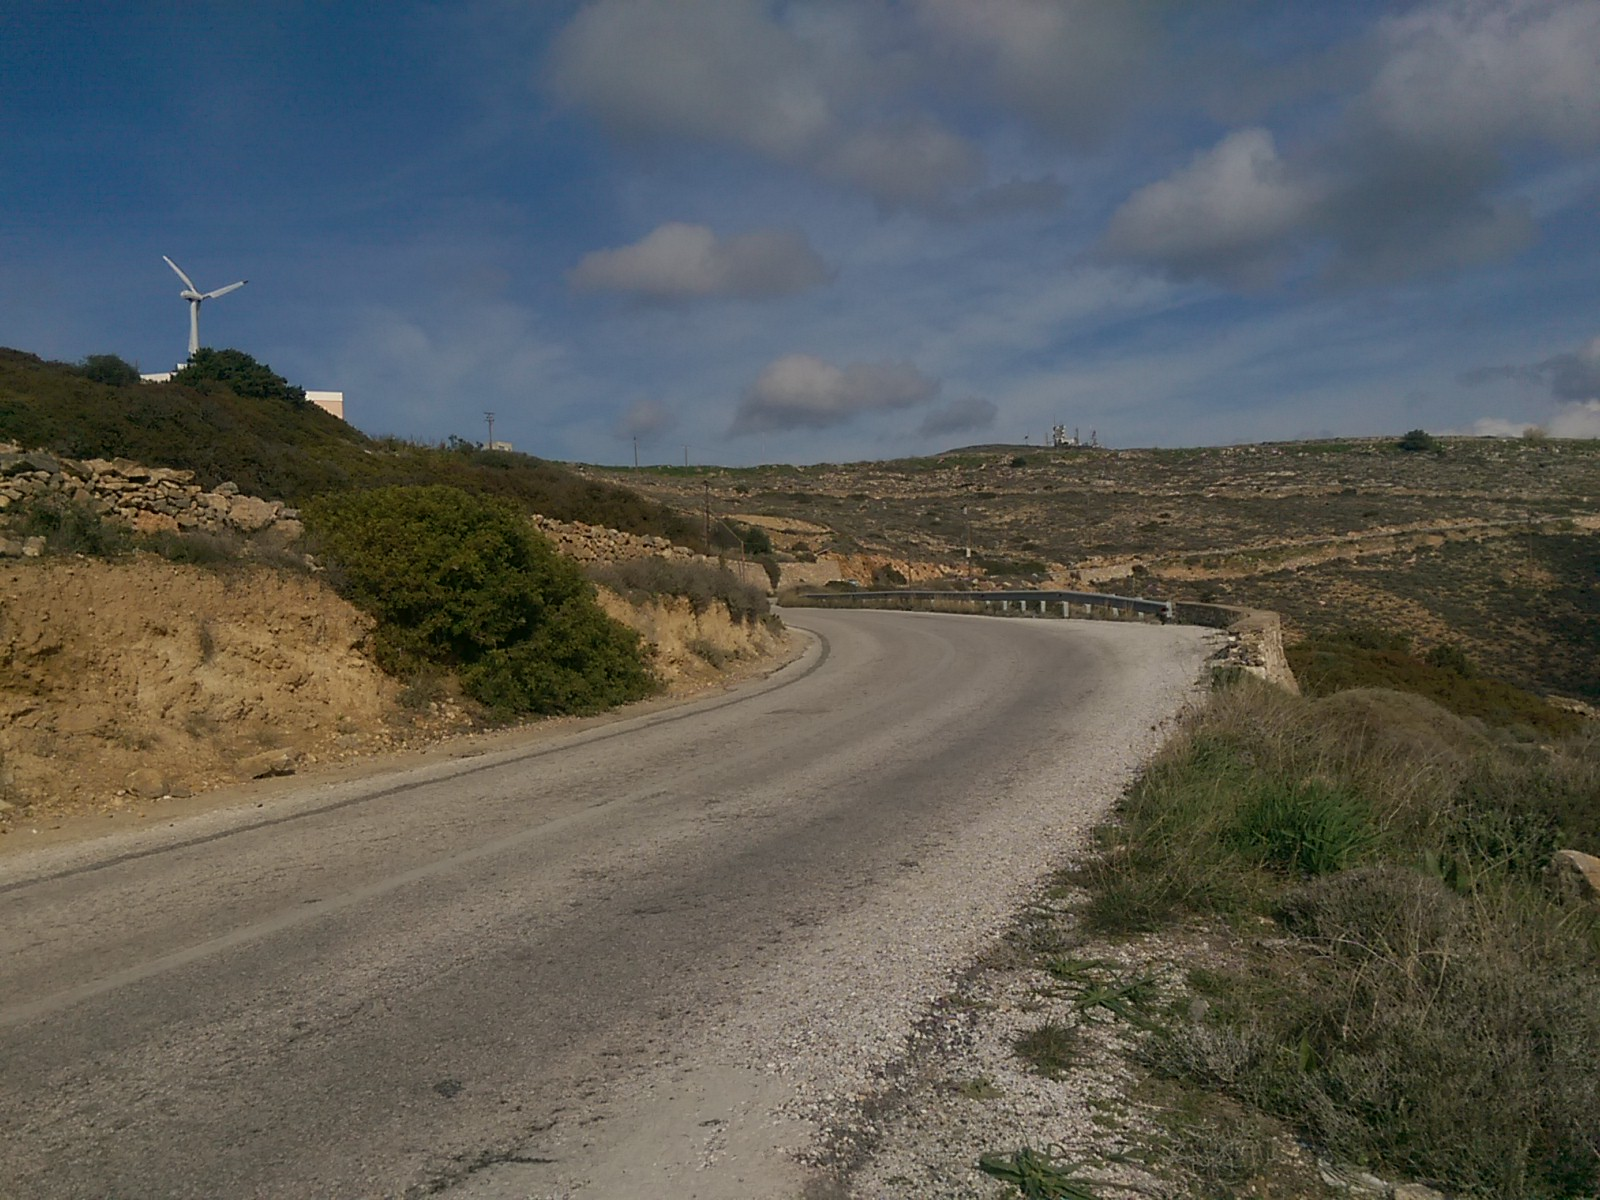 A concrete road curves around to the left, with gorse on both sides, a blue sky and a wind turbline in the distance